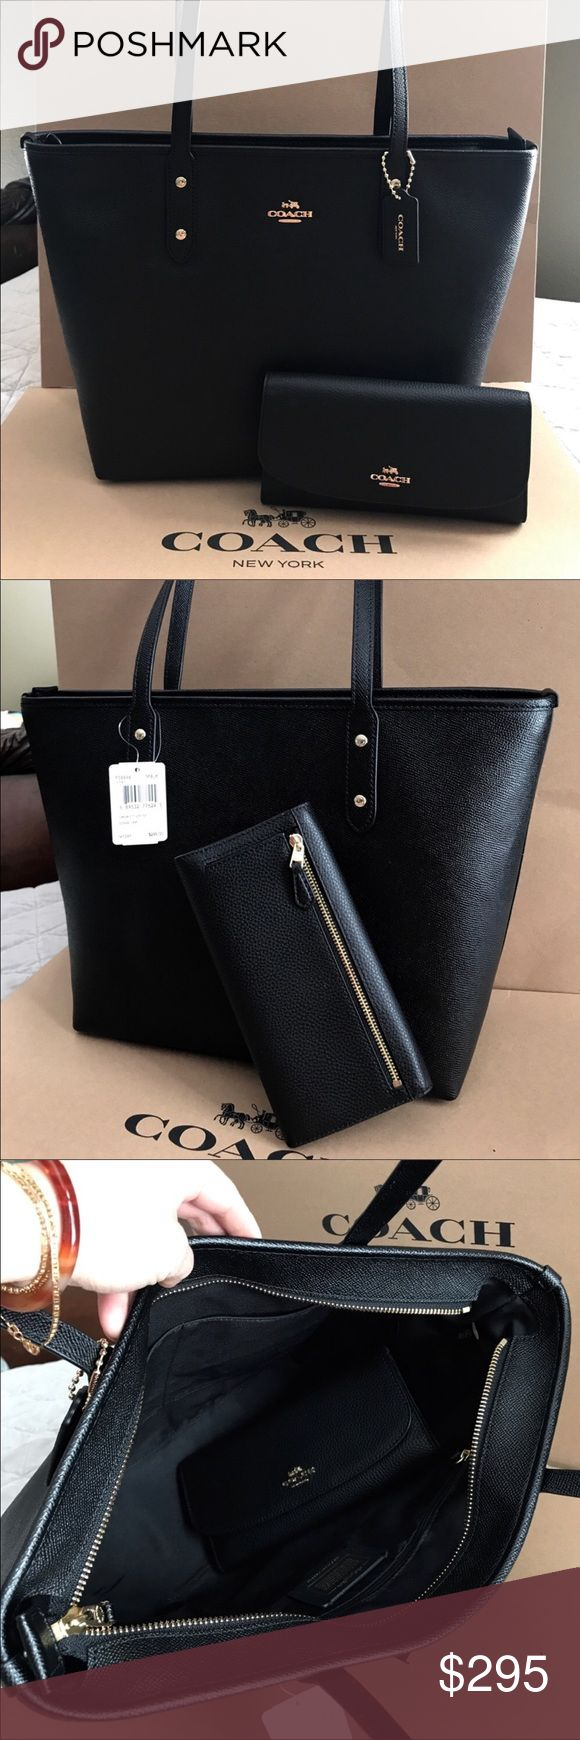 Coach Set 100% Authentic Coach Tote Bag and Checkbook Wallet, both brand new with tag! Coach Bags Totes